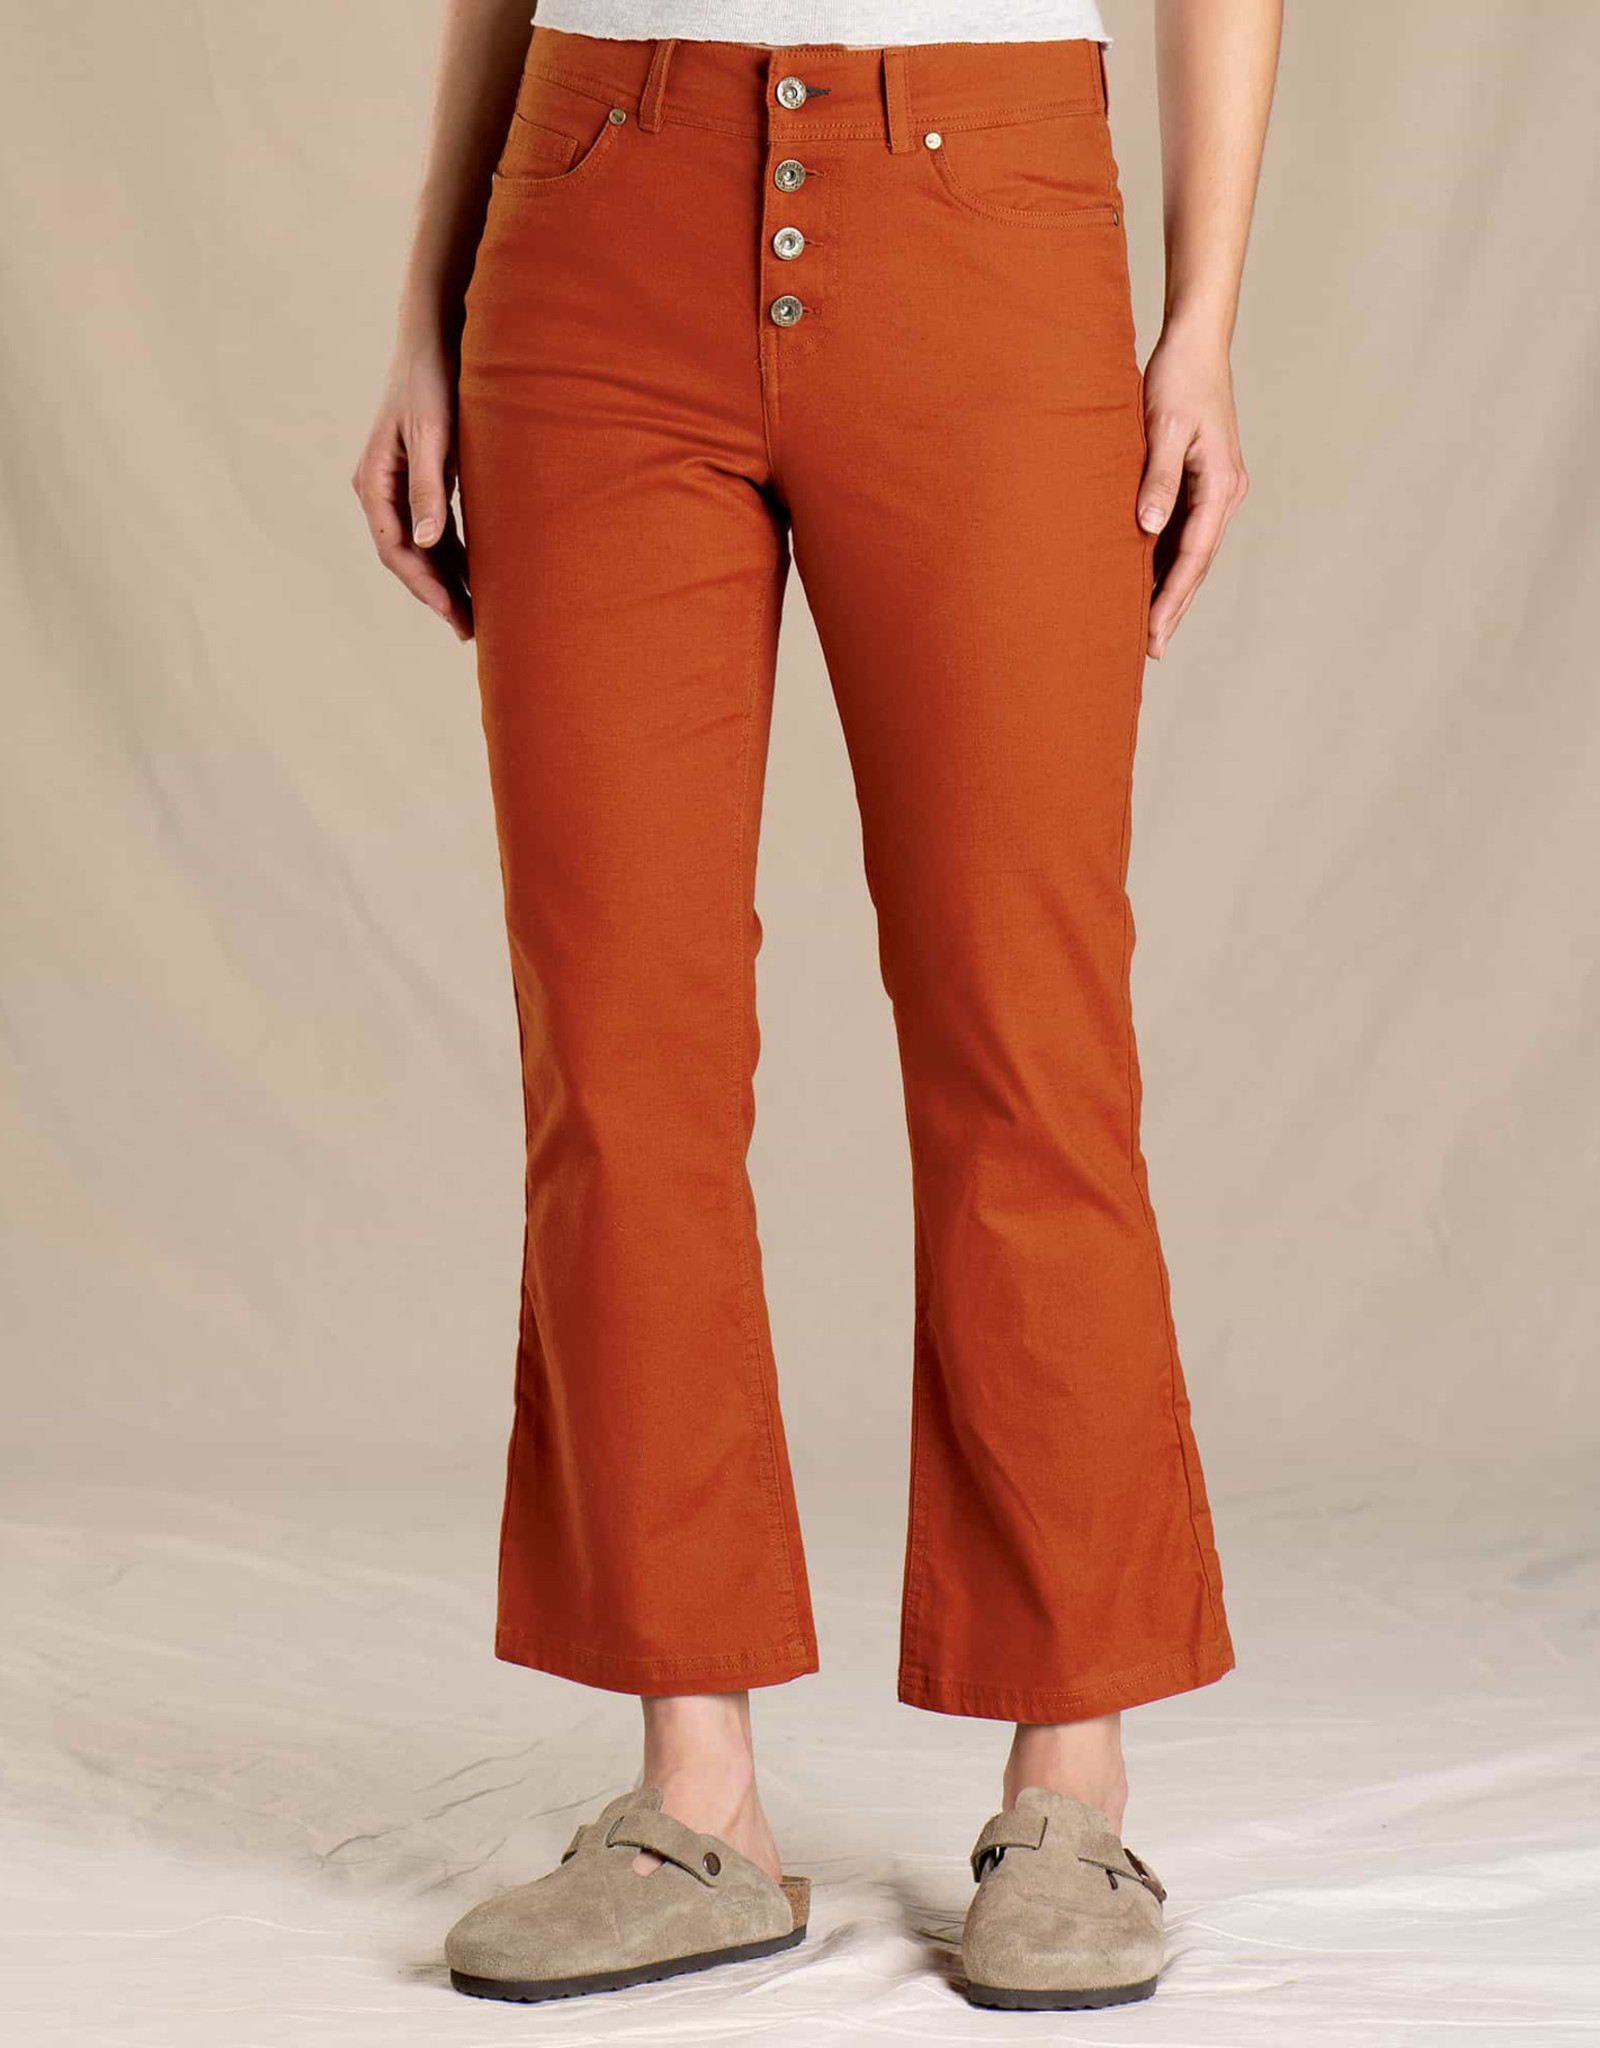 Toad&Co WOMEN'S TOAD & CO. EARTHWORKS KICK FLARE PANT-PICANTE